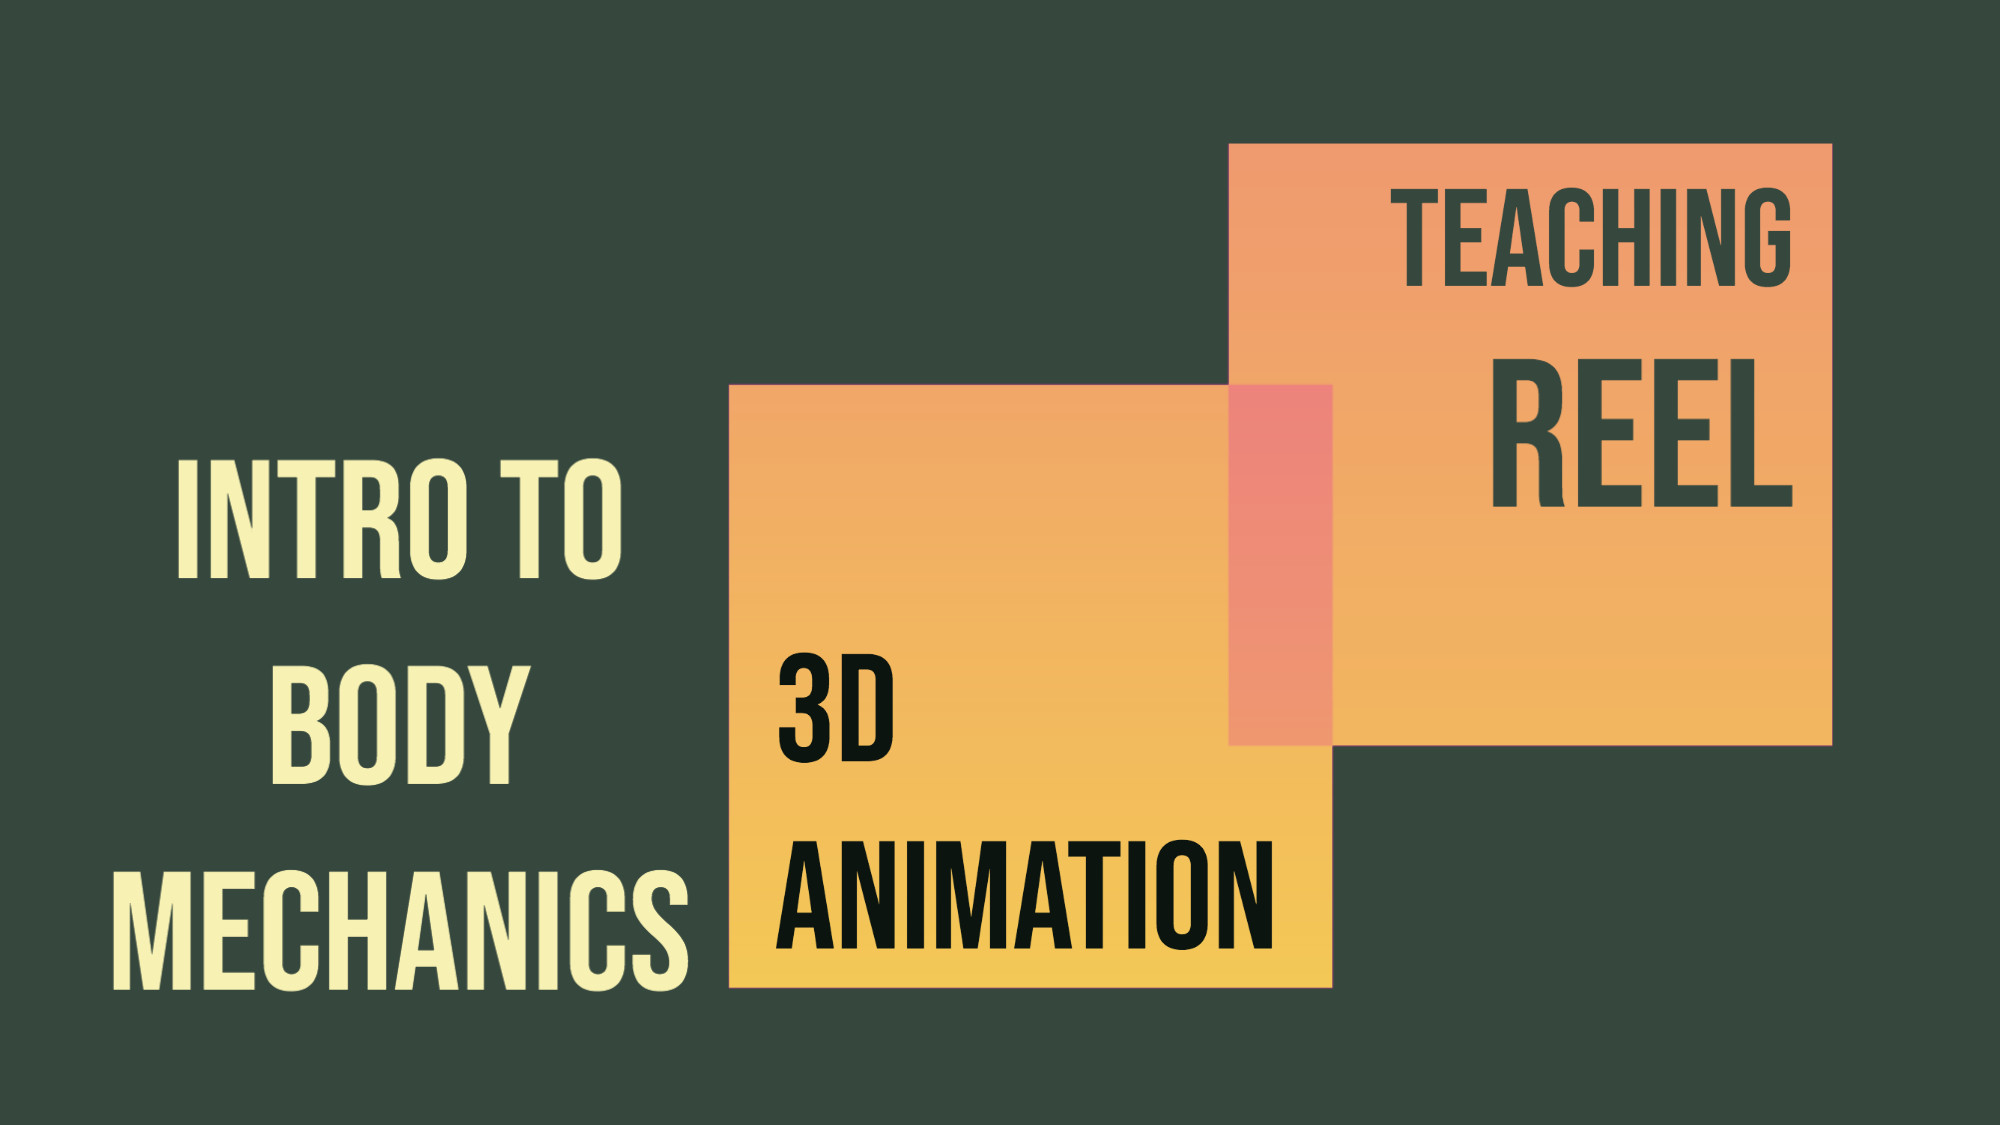 Intro to Body Mechanics. 3D Animation Teaching Reel, with Froggy Hearth Studio from Moldova/UK